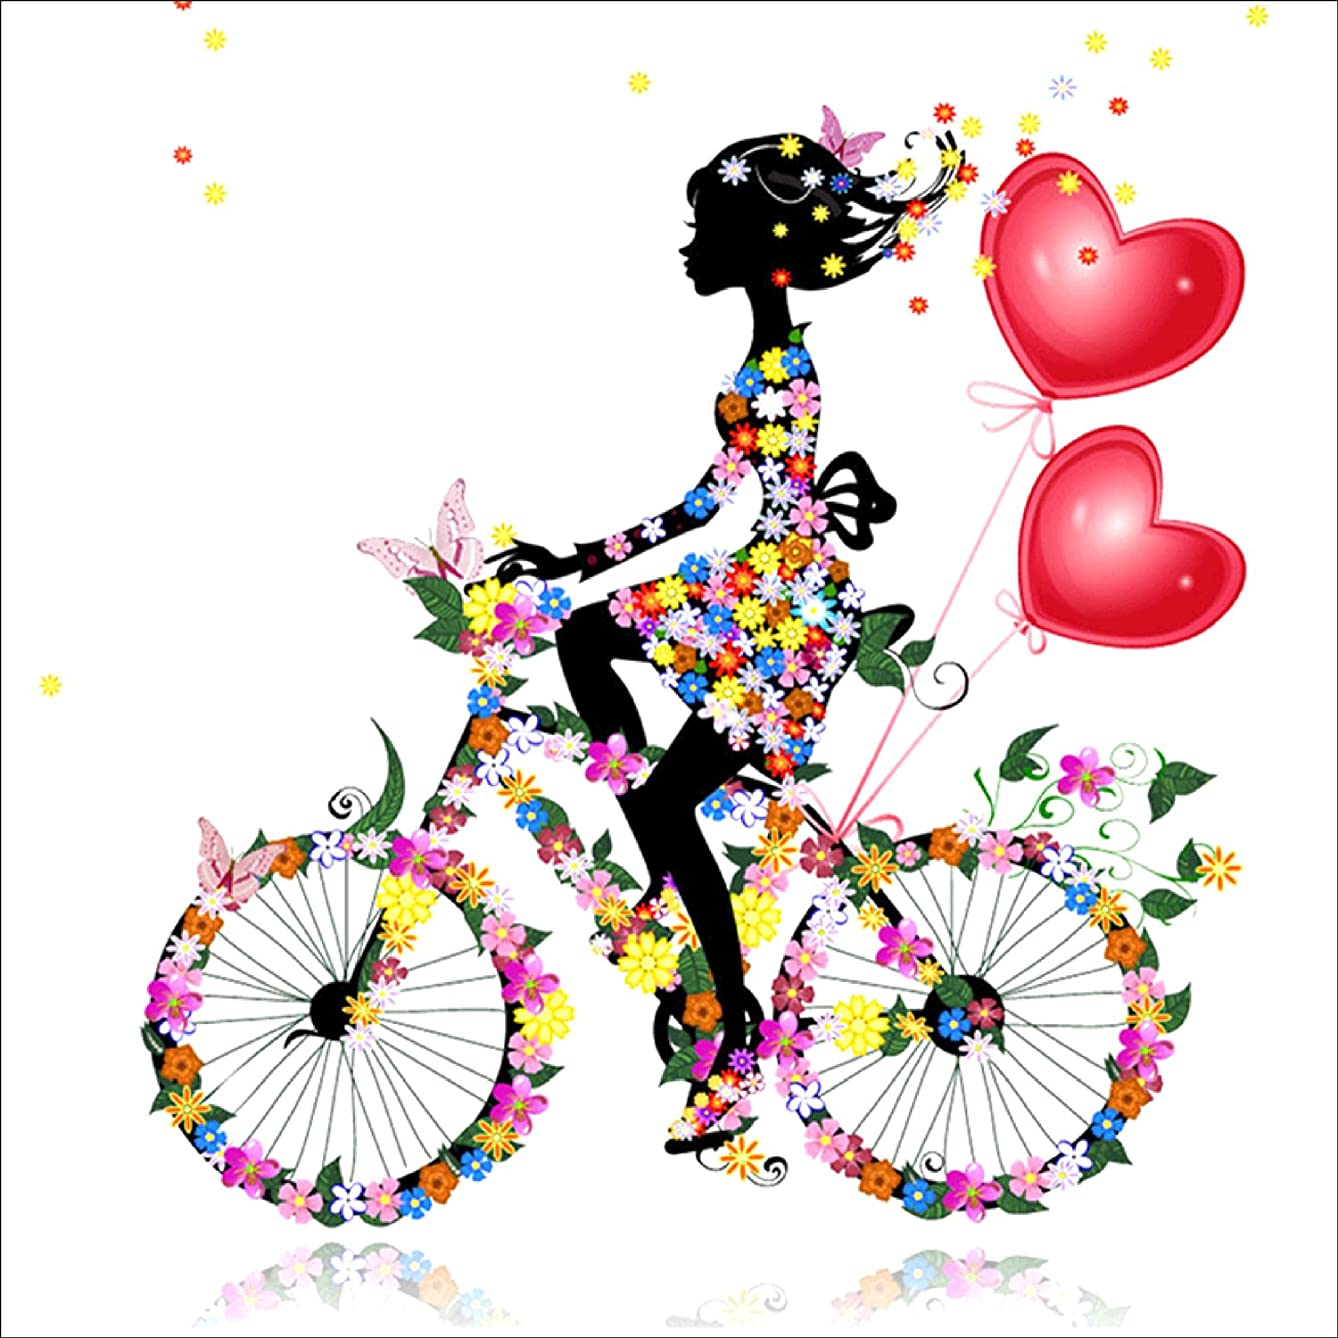 DIY 5D Diamond Painting by Number Kit, Girl Riding Bike Crystal Rhinestone Embroidery Cross Stitch Ornaments Arts Craft Canvas Wall Decor